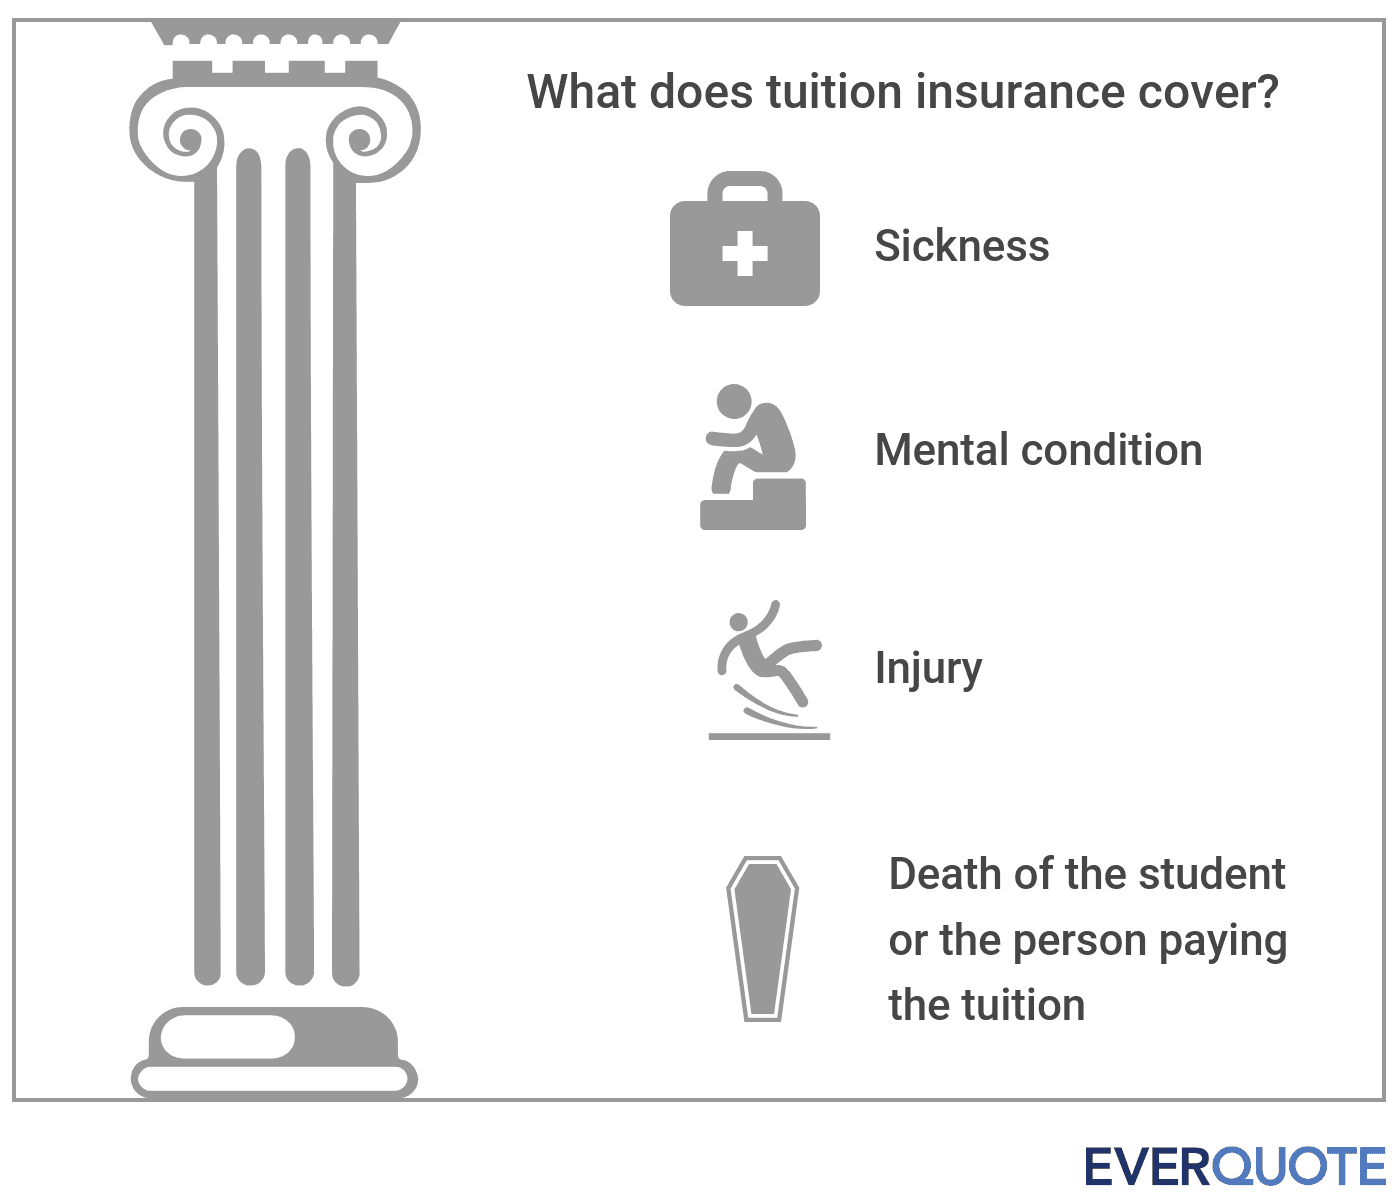 What tuition insurance covers